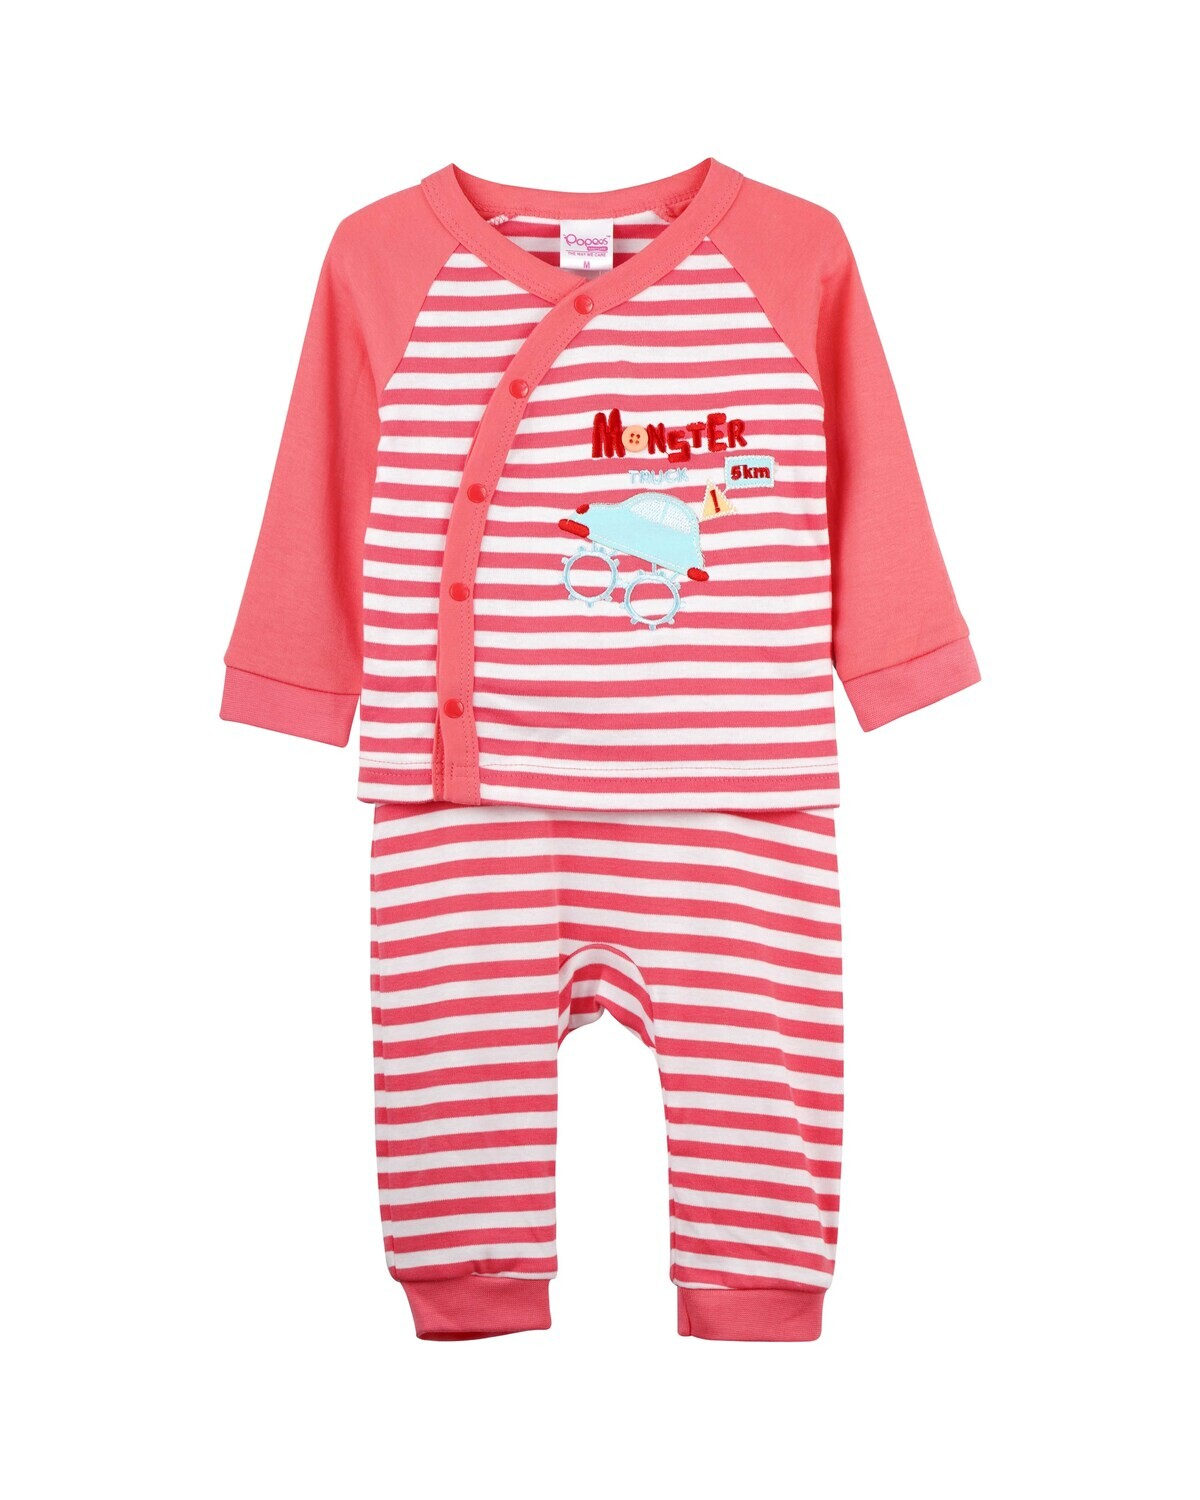 CHON Coral Top/Trouser Half Sleeves Front Open Interlock for Baby BOYS